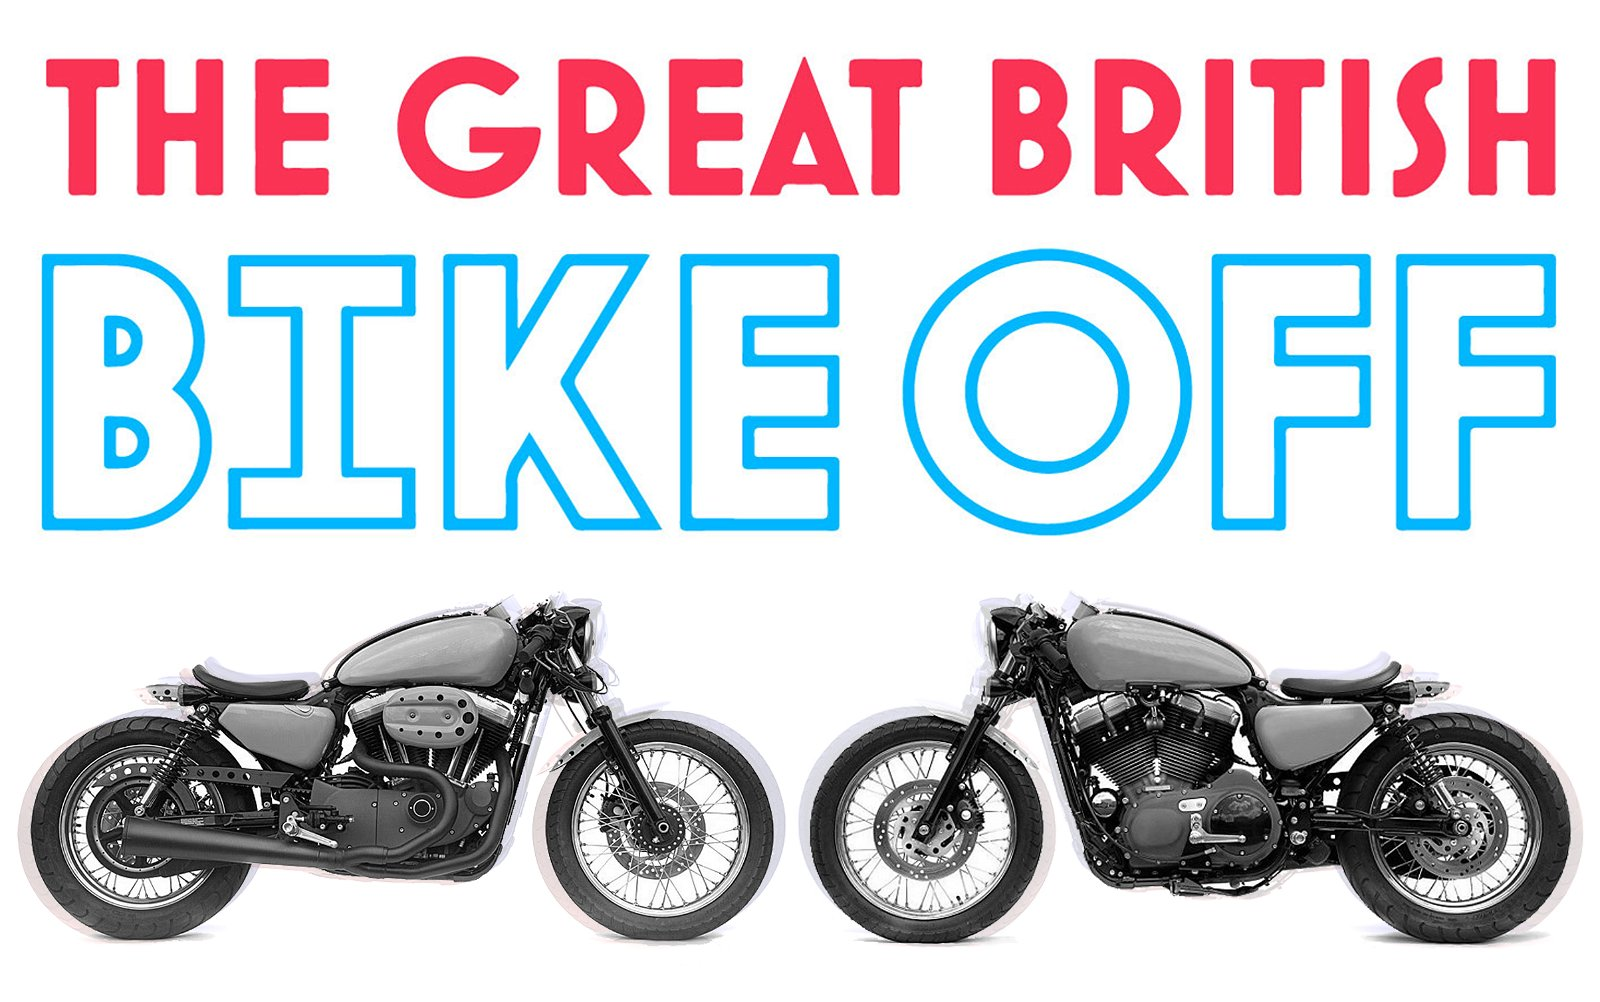 J&S Accessories Great British Bike Off Competition 2018